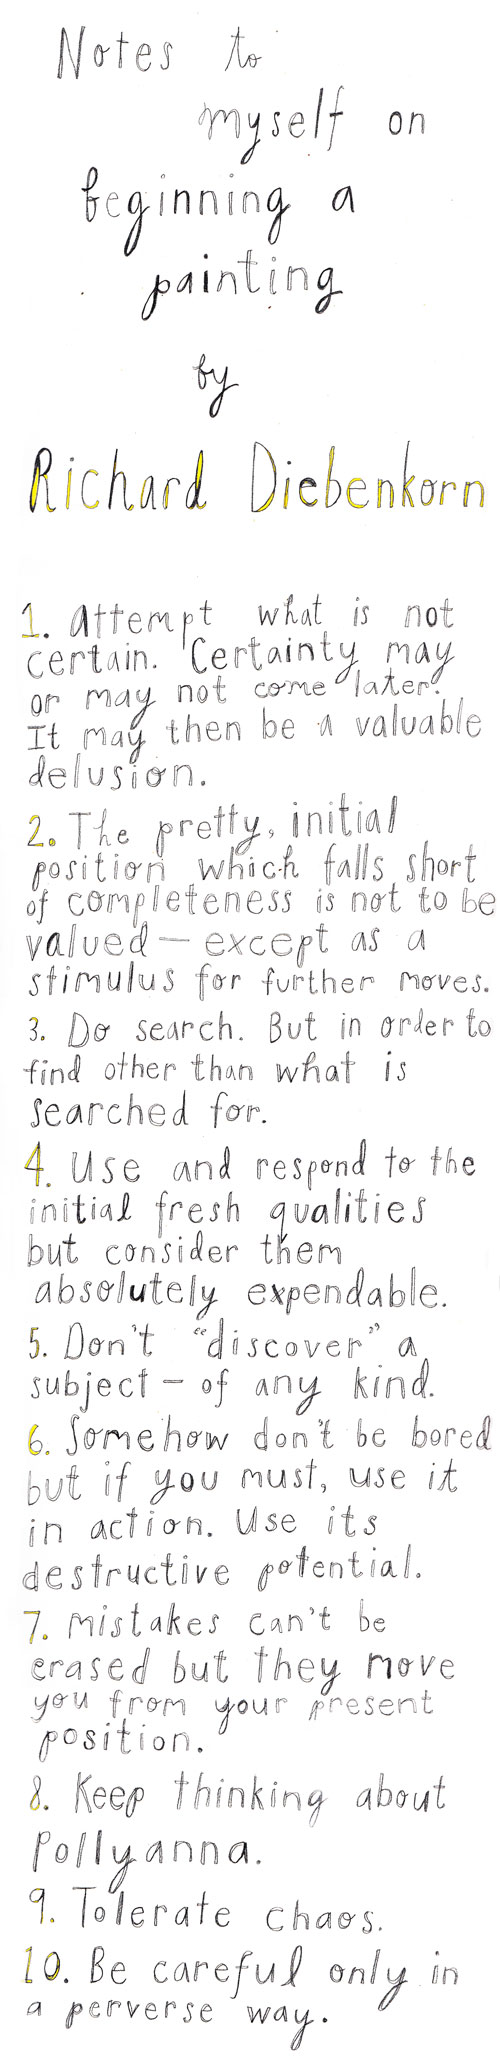 10 Rules for Creative Projects from Iconic Painter Richard Diebenkorn